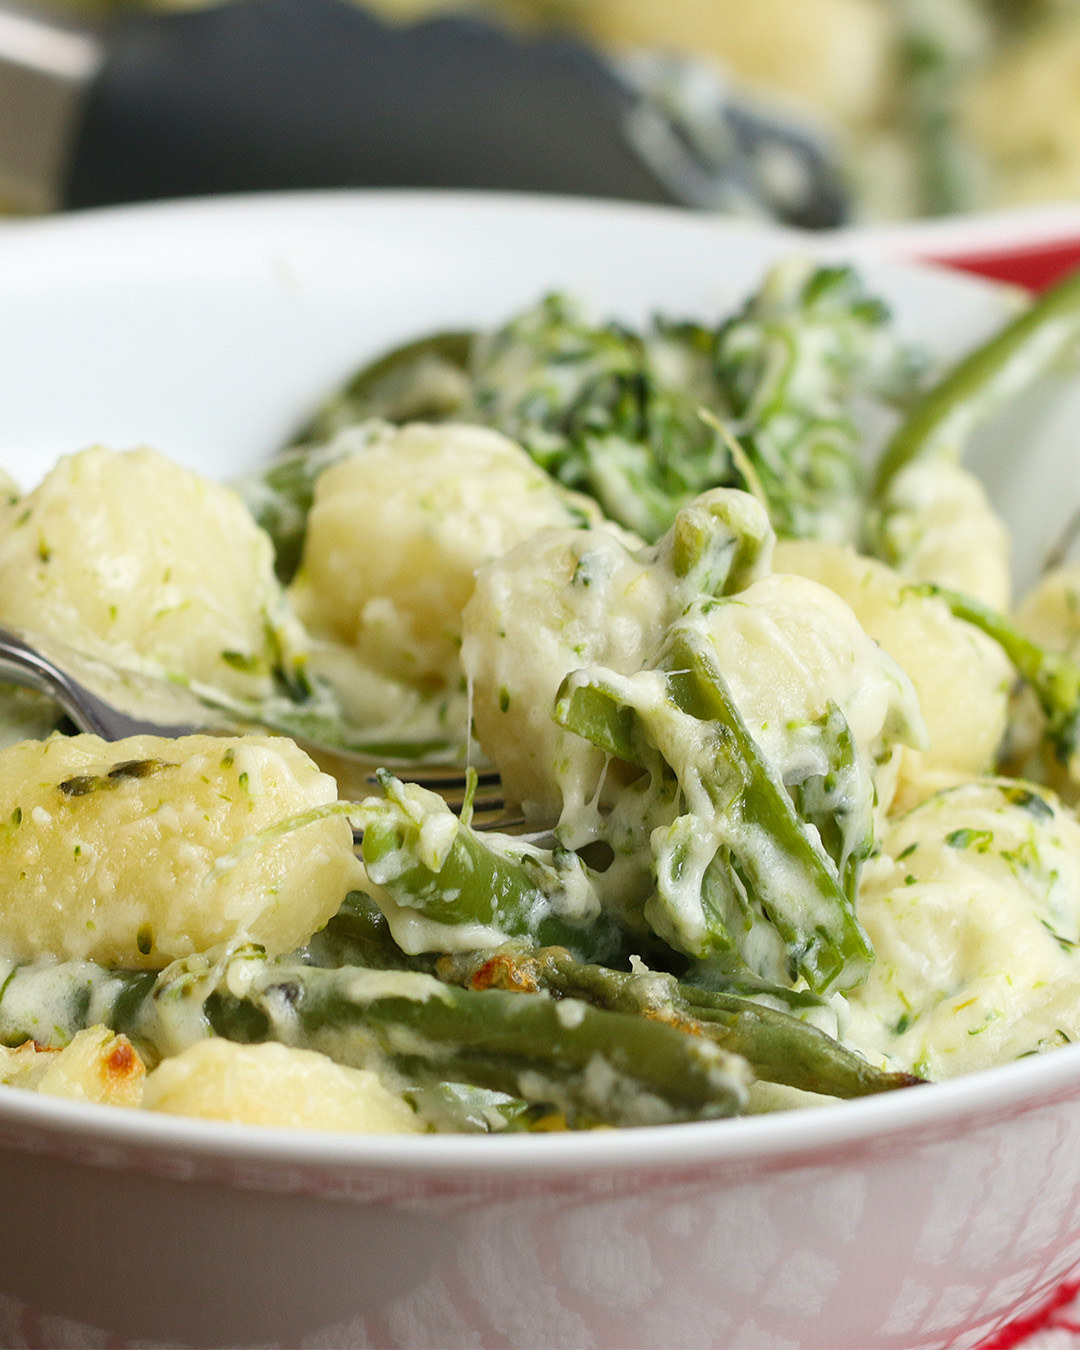 All you need is:– Green beans– Broccoli– Gnocchi– Mozzarella cheese– Parmesan cheese– Single cream– PepperGet the full recipe video here!